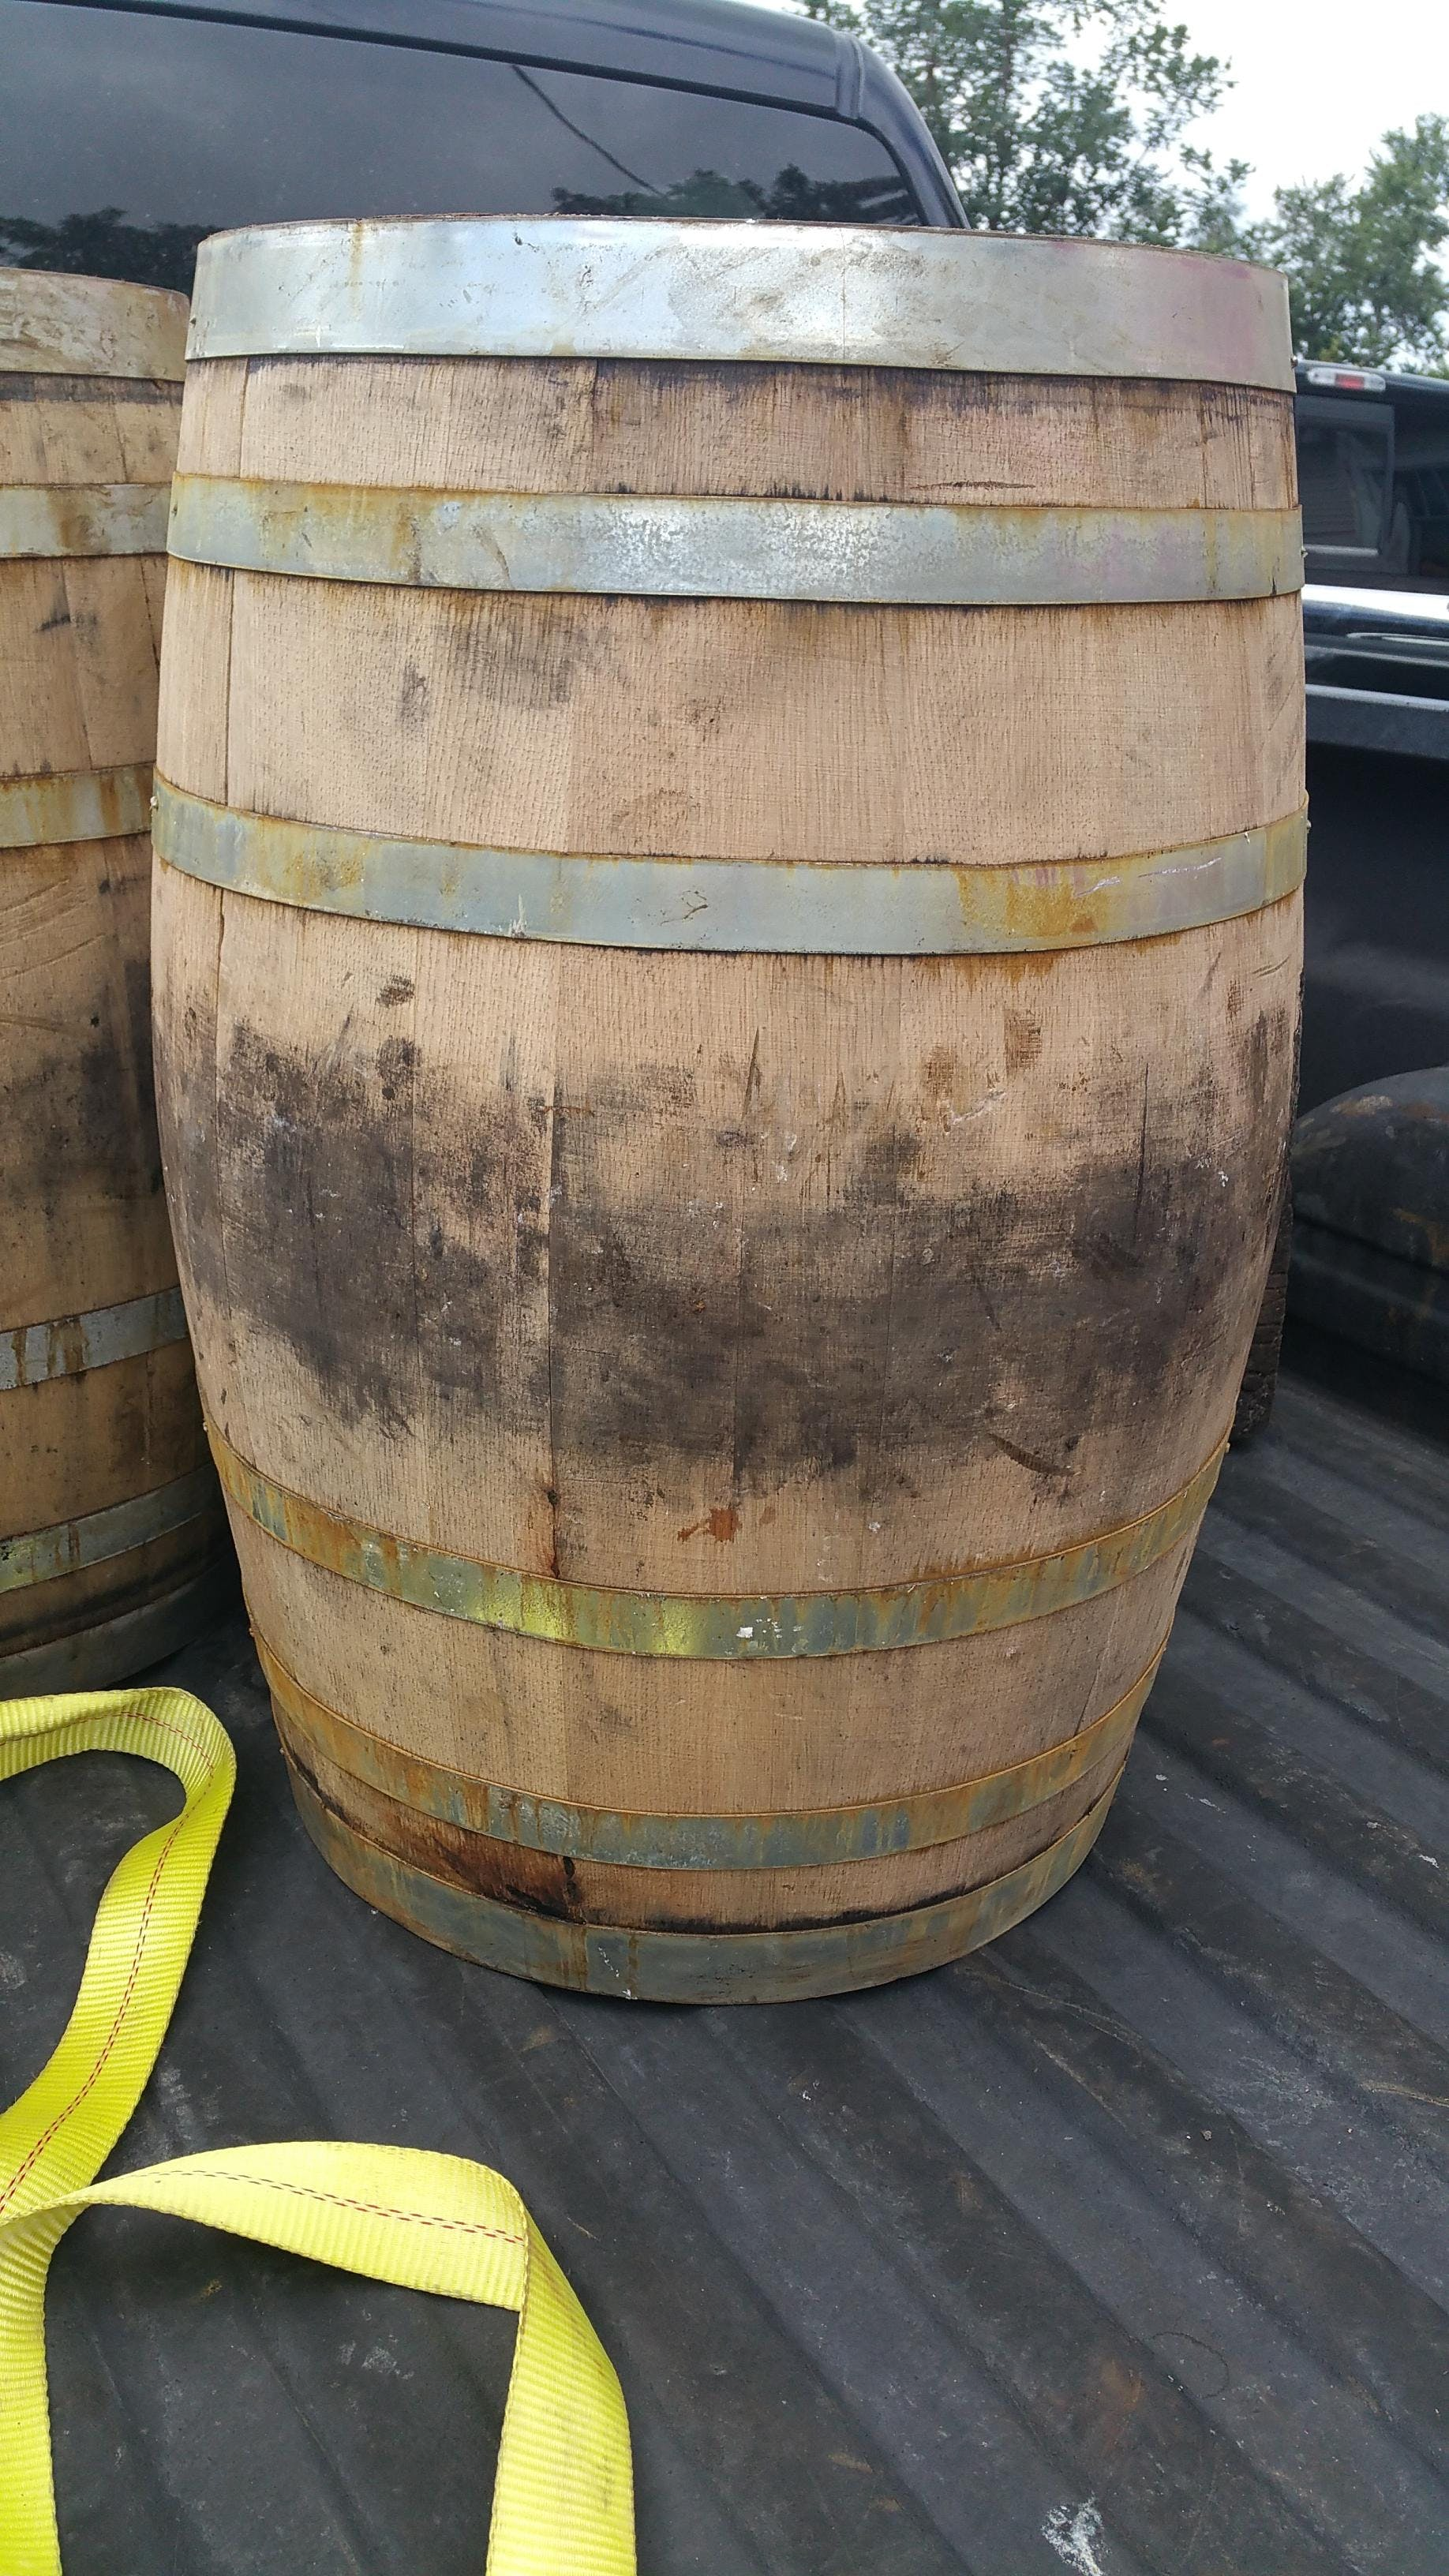 30 Gallon Fresh Dumped Whiskey Barrels Barrel sold by Midwest Barrel Company